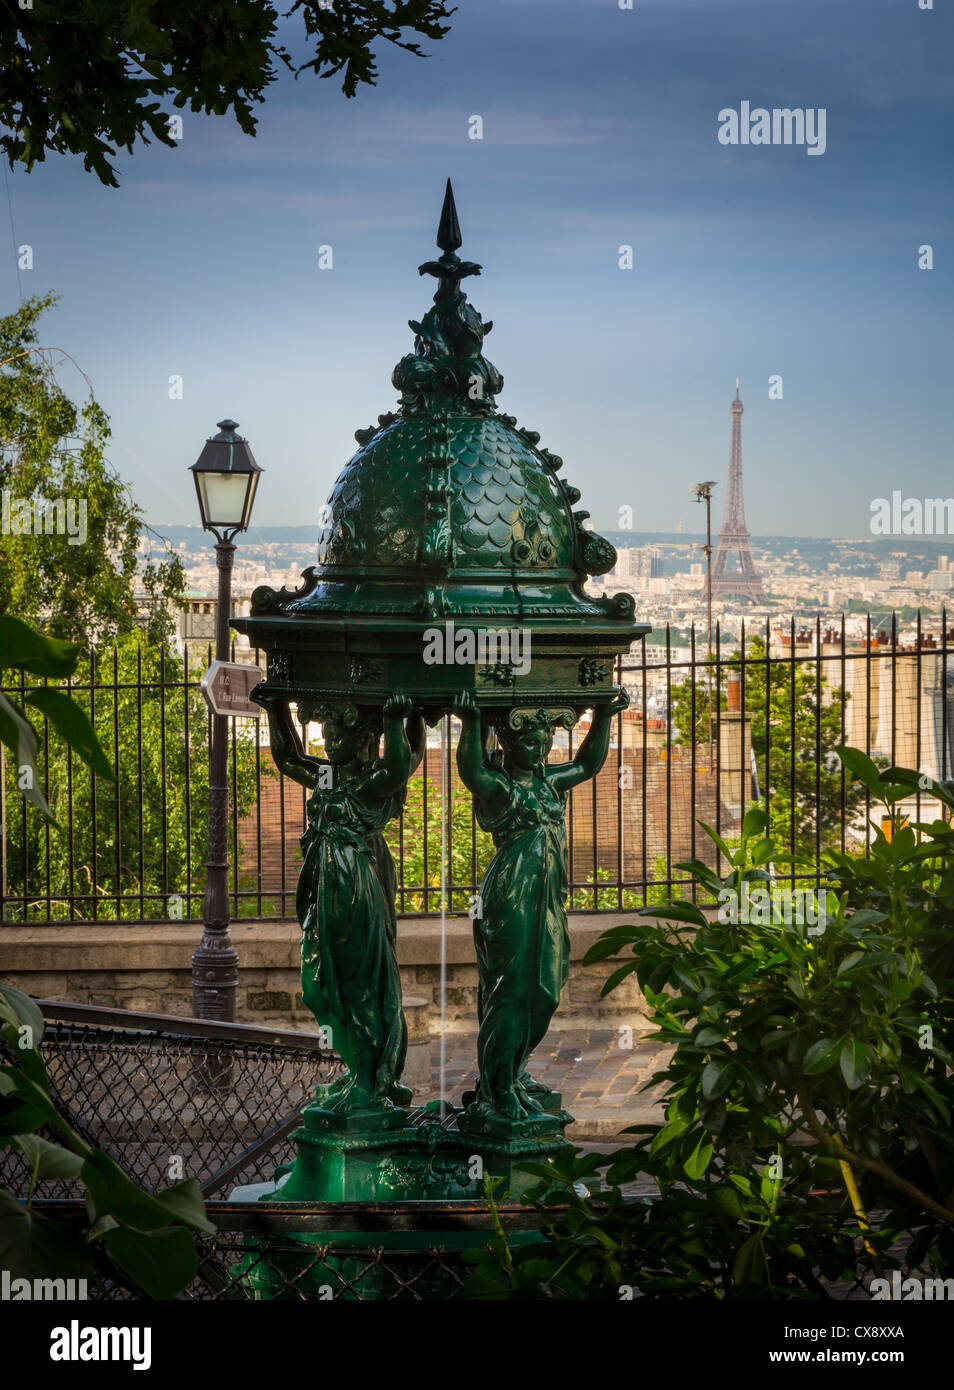 Belle fontaine publique sur la butte Montmartre à Paris, France Photo Stock